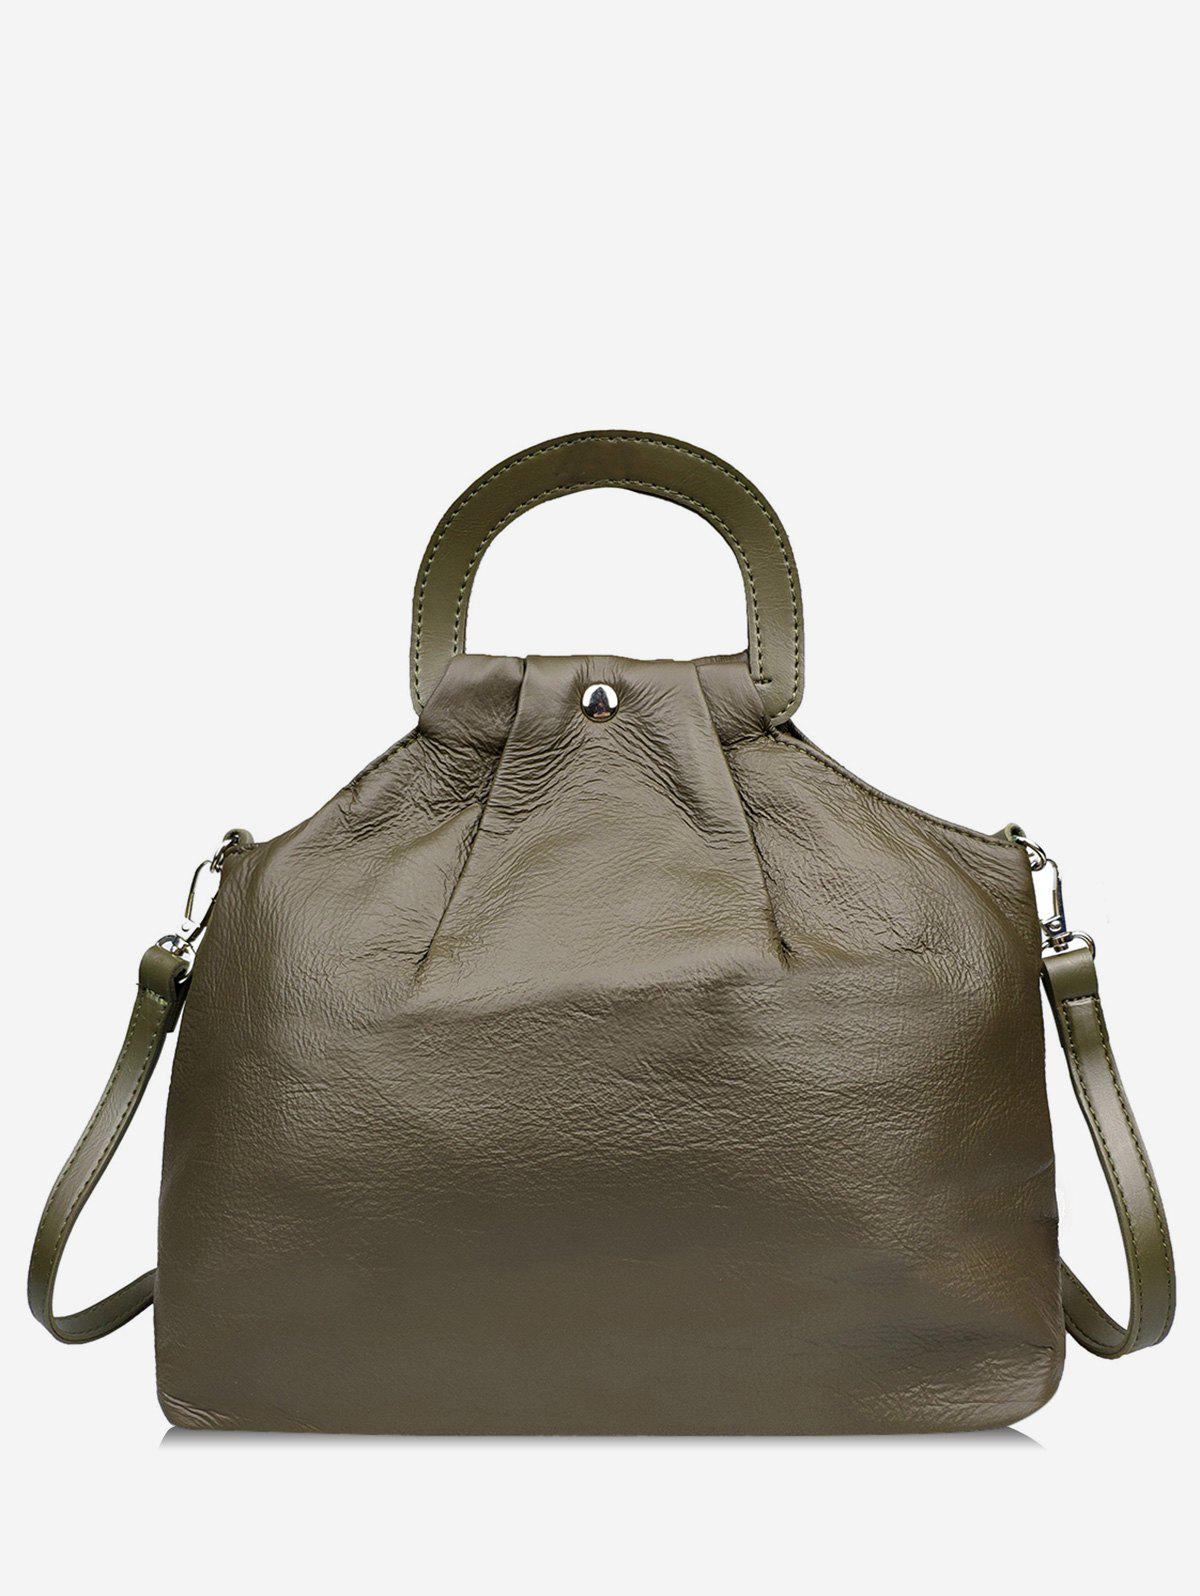 Discount Going Out PU Leather Tote Bag